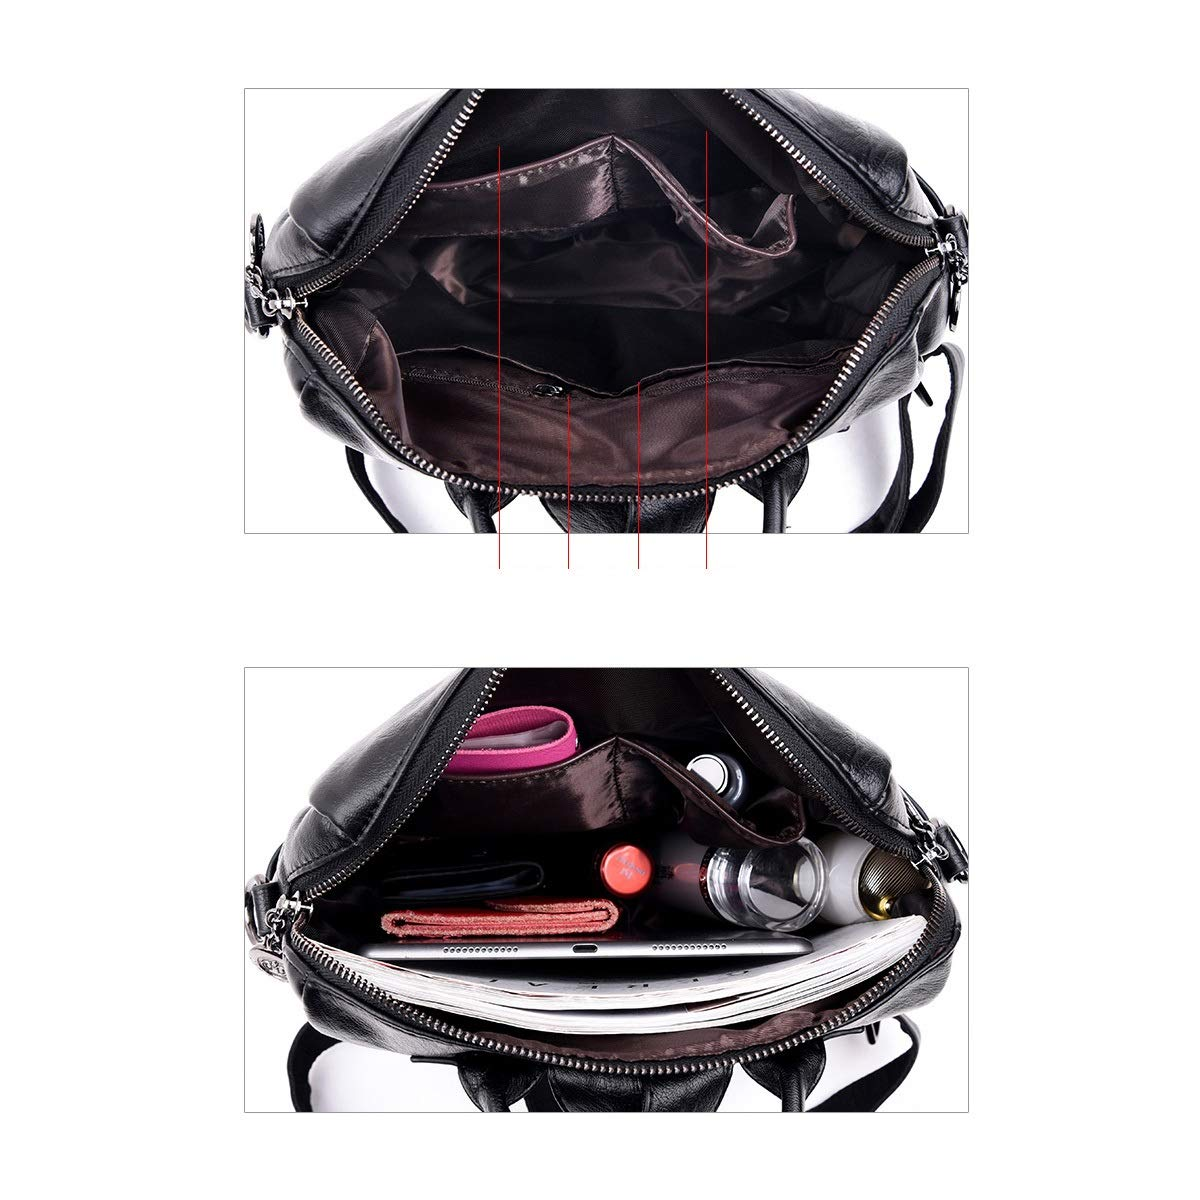 Size : 31cm31cm14cm PU Leather Black//Red//Brown//Blue Haoyushangmao Girls Multi-Purpose Backpack for Daily Travel//Travel//School//Work//Fashion//Leisure 2019 Brown